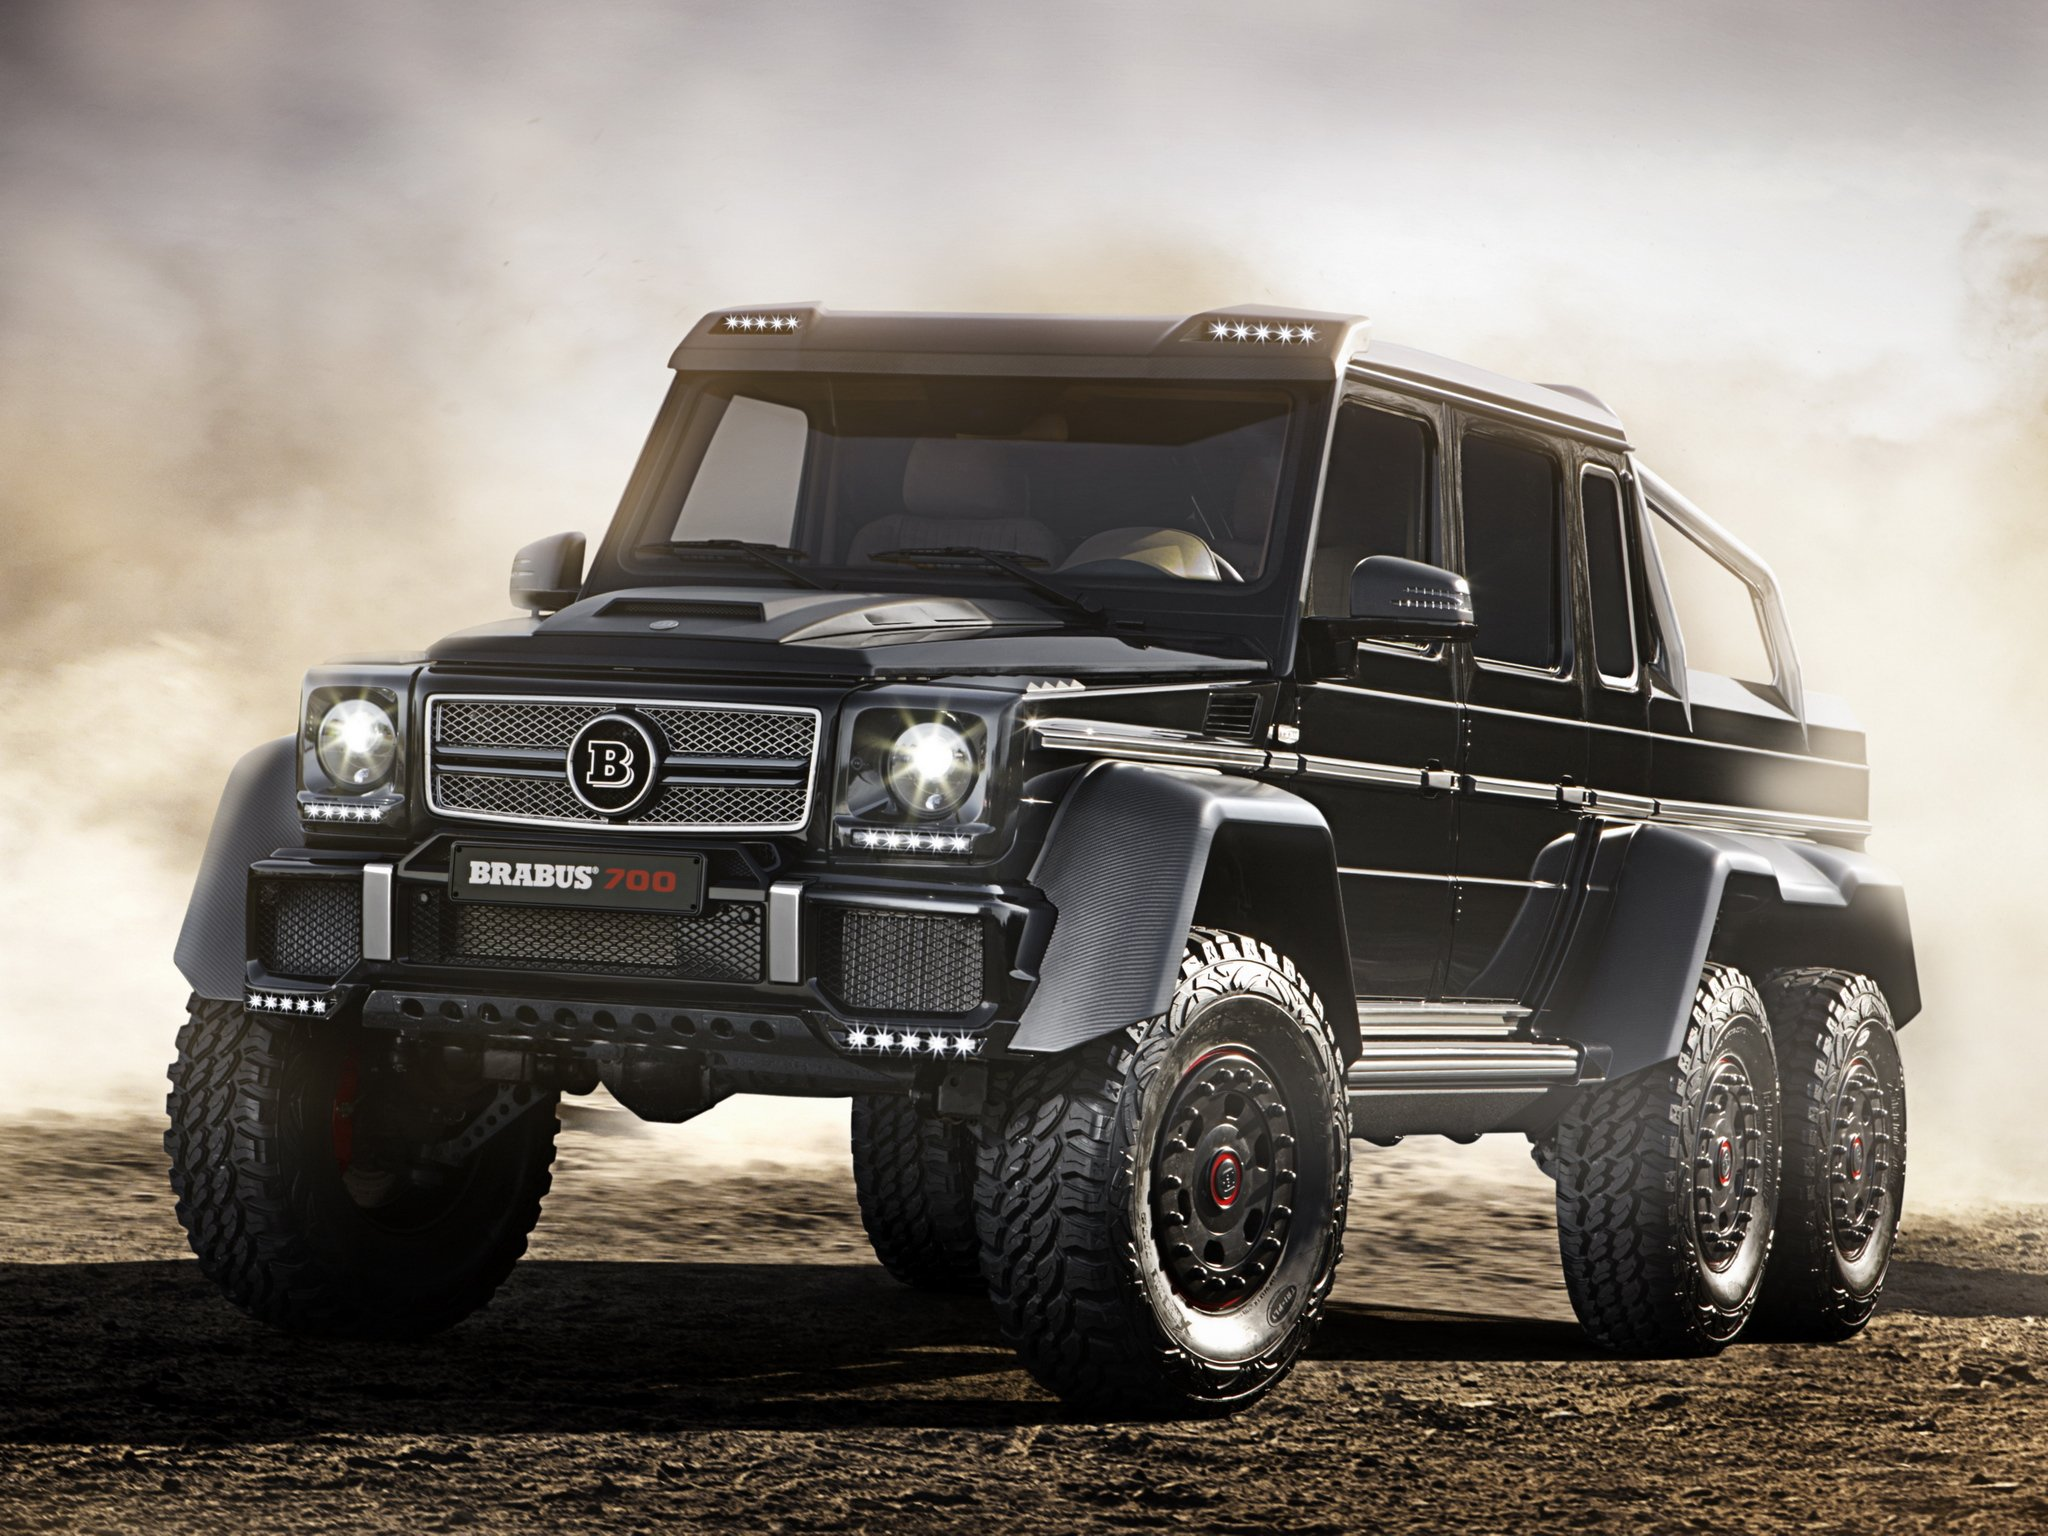 2013 brabus mercedes benz g63 amg 6x6 w463 pickup offroad wallpaper 2048x1536 630702. Black Bedroom Furniture Sets. Home Design Ideas